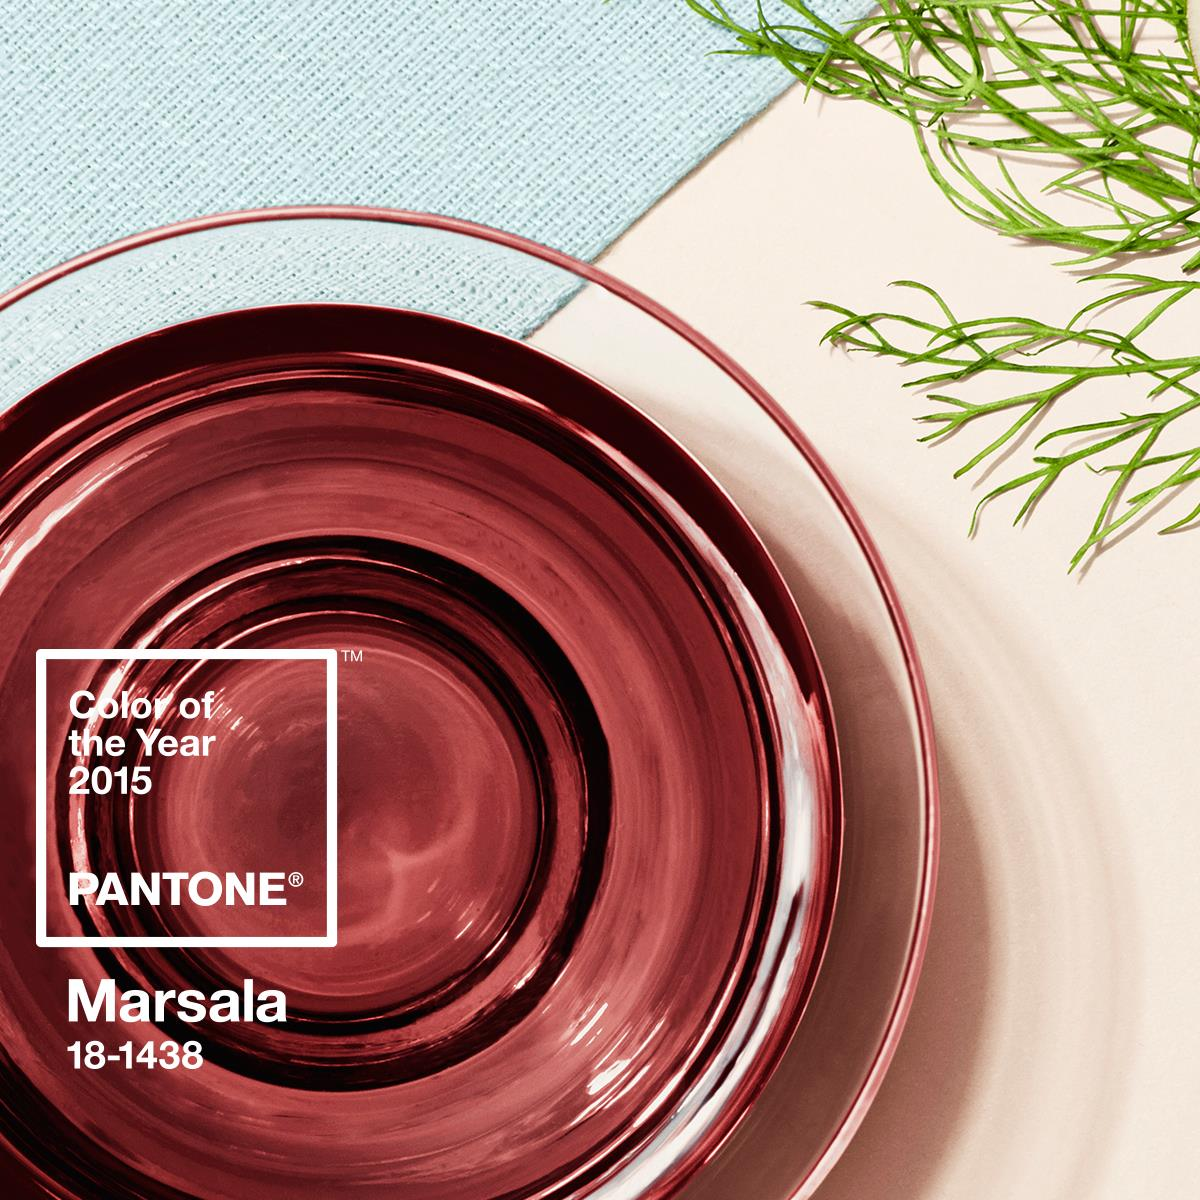 Marsala Is The Pantone Color Of The Year For 2015